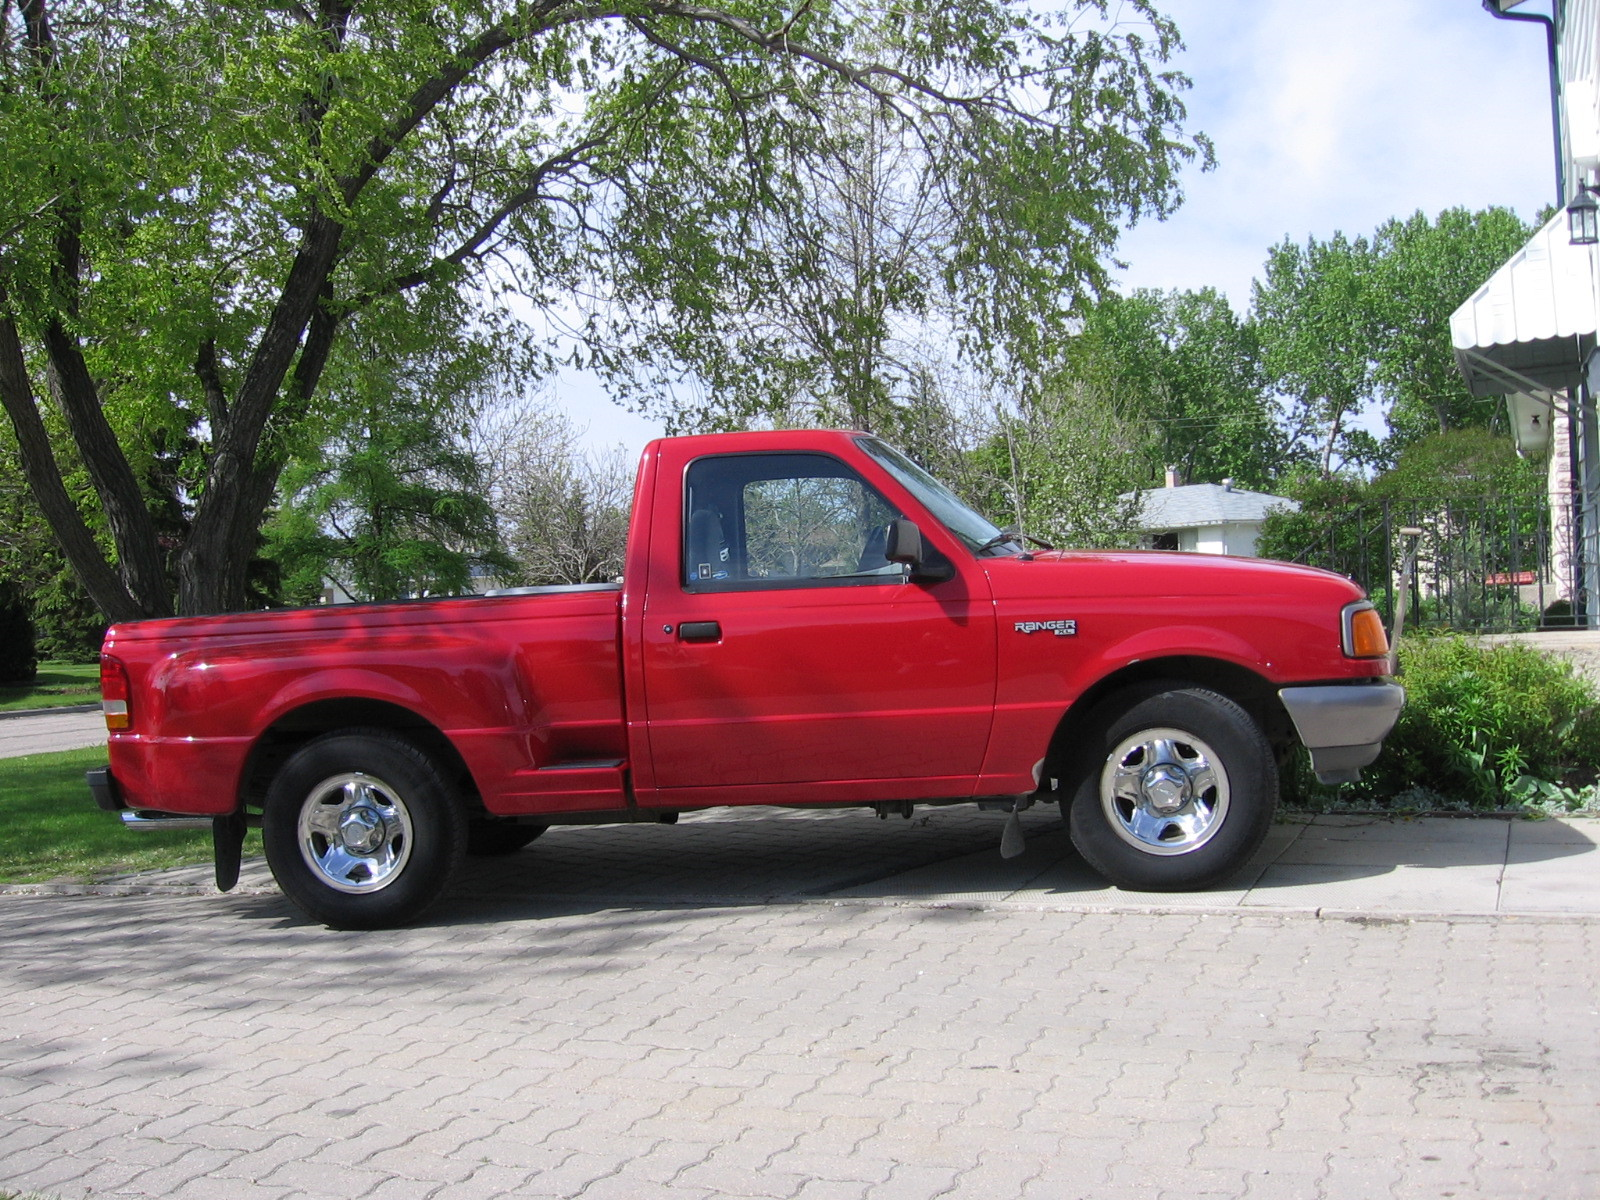 1995 Ford Ranger Pictures C245 in addition 2015 Suburban together with Parts 59252884 moreover Lexus lx as well B004CGGH8W. on 1997 ford ranger extended cab